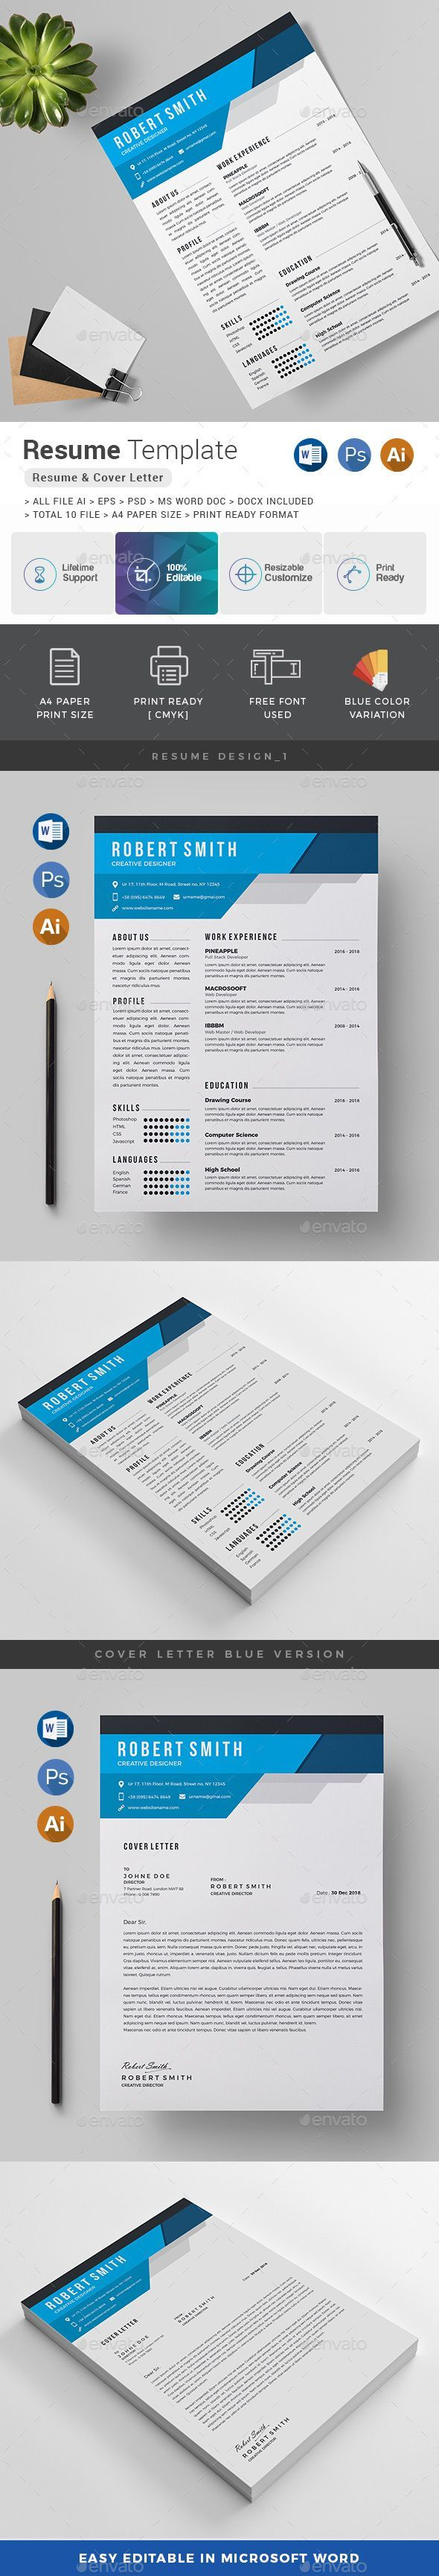 Resume Resumes Stationery (With images) Resume design